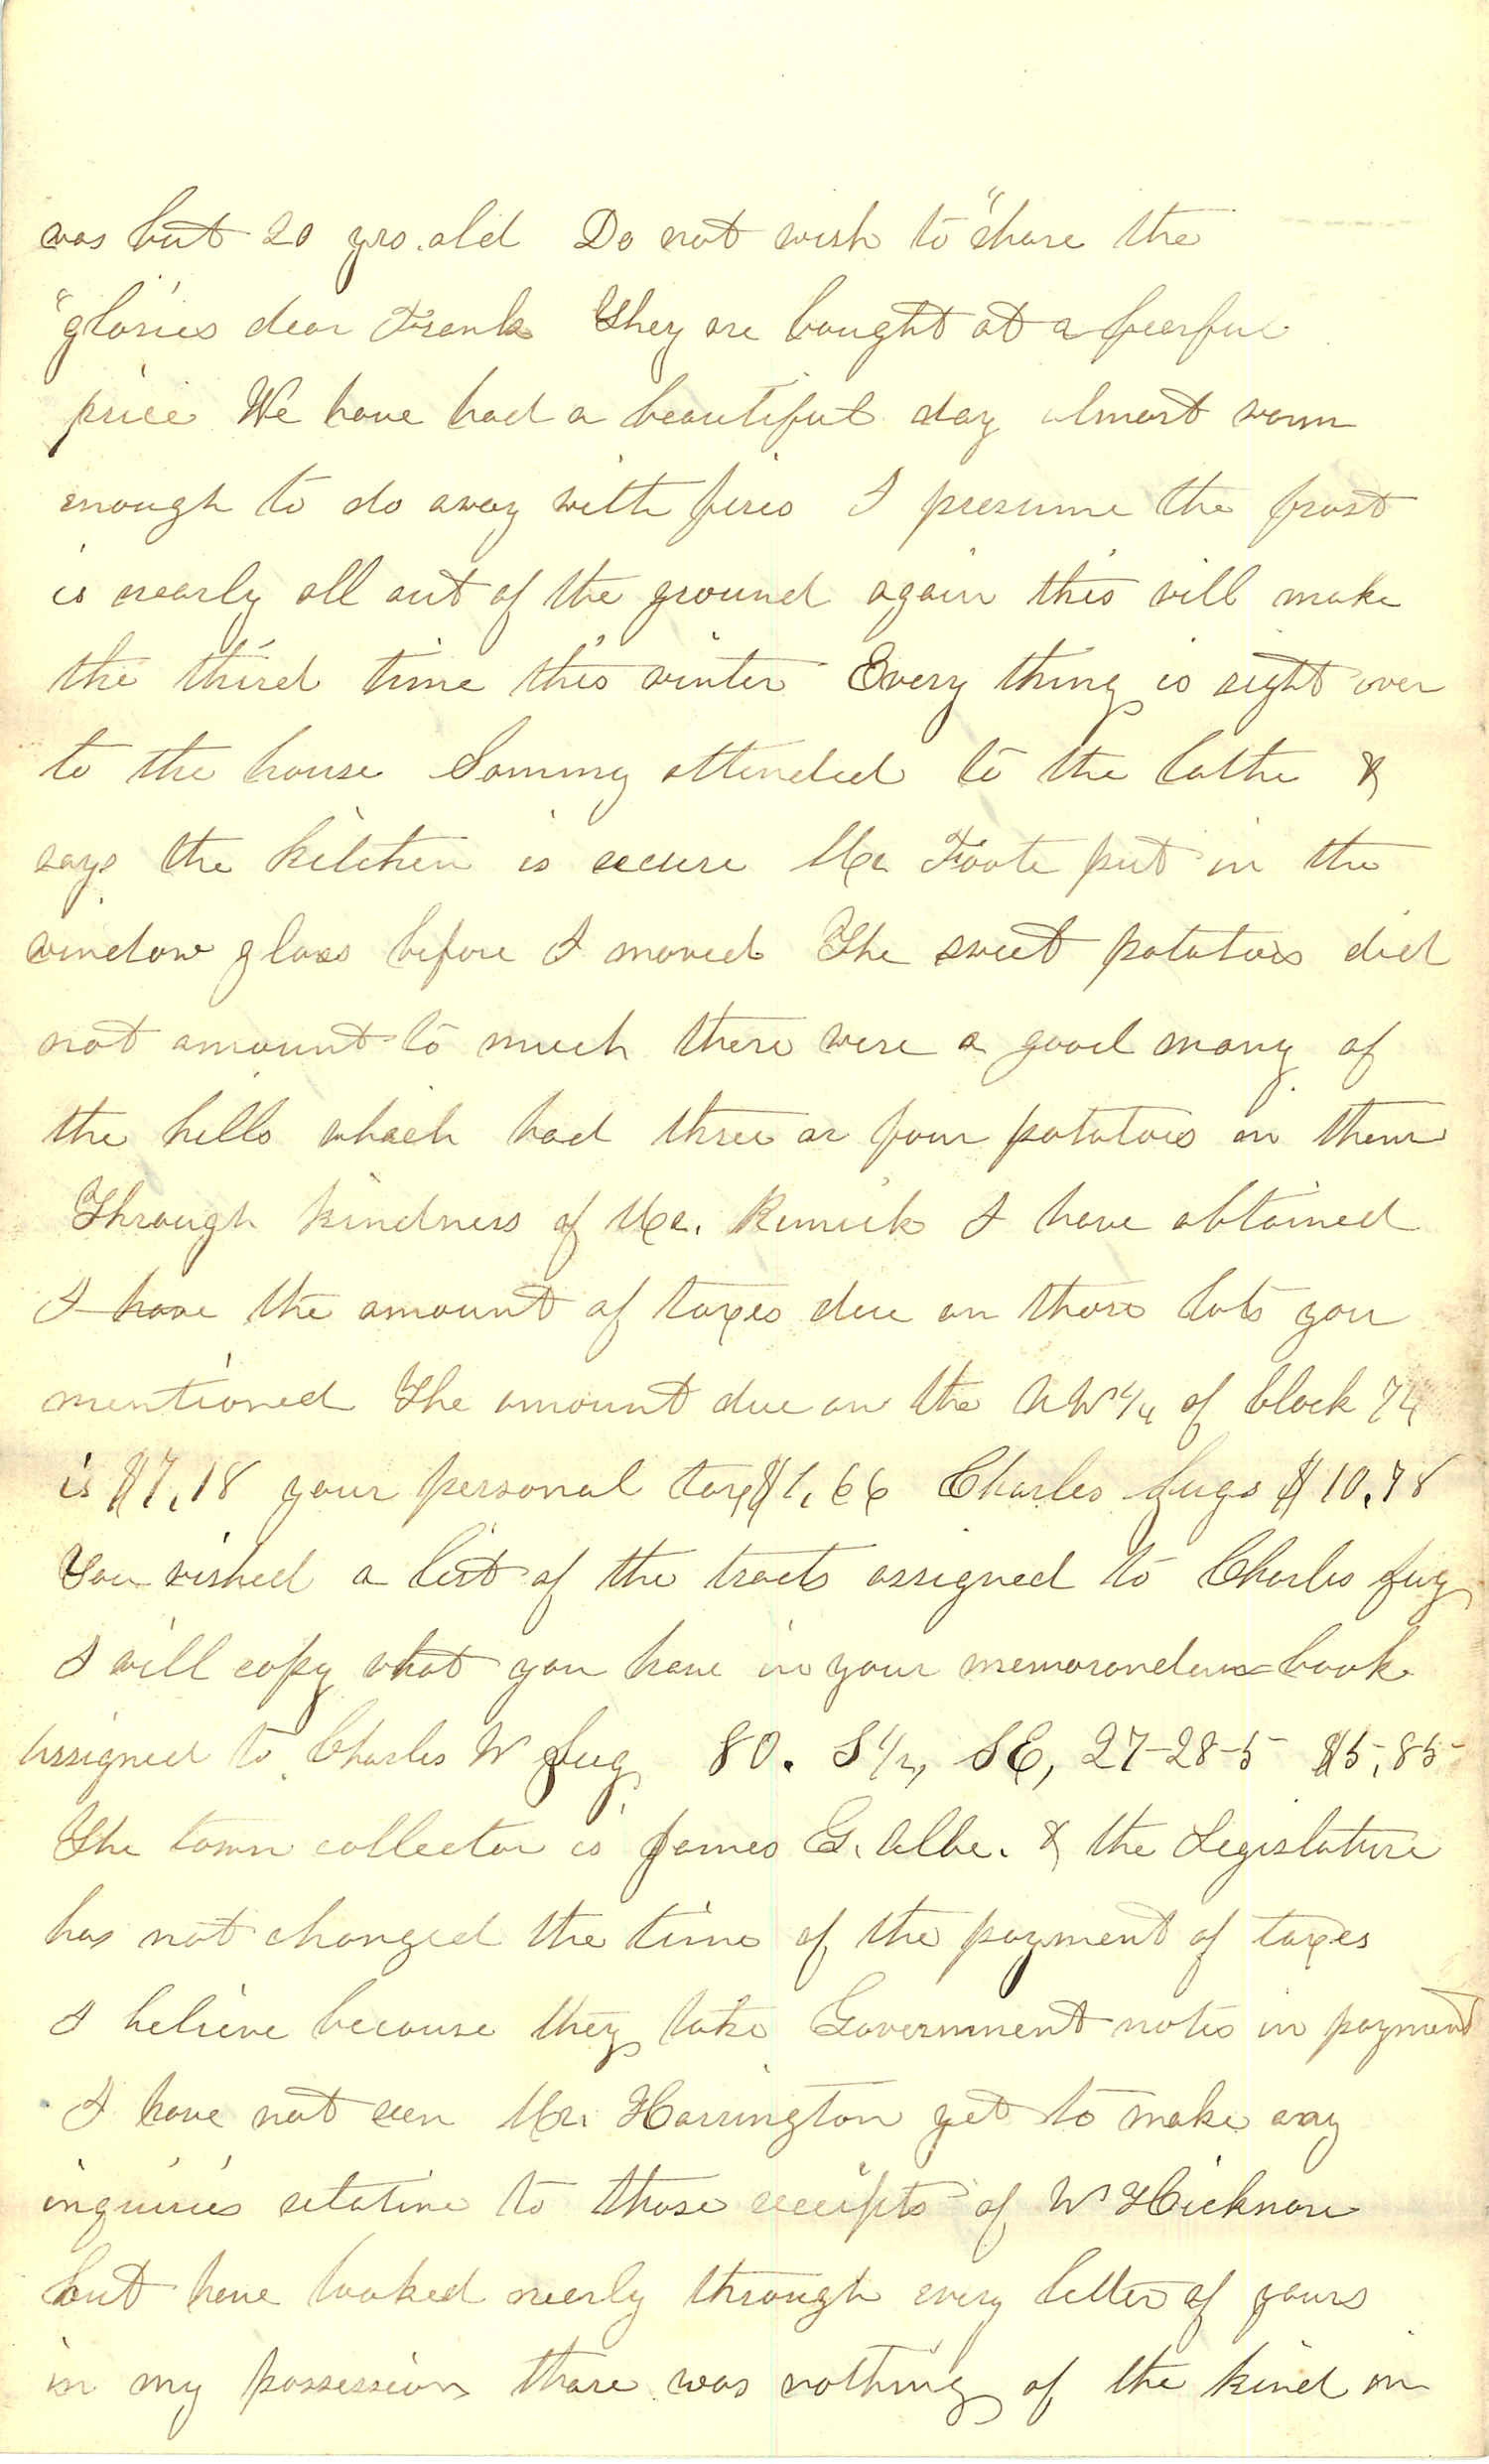 Joseph Culver Letter, January 31, 1863, Page 2